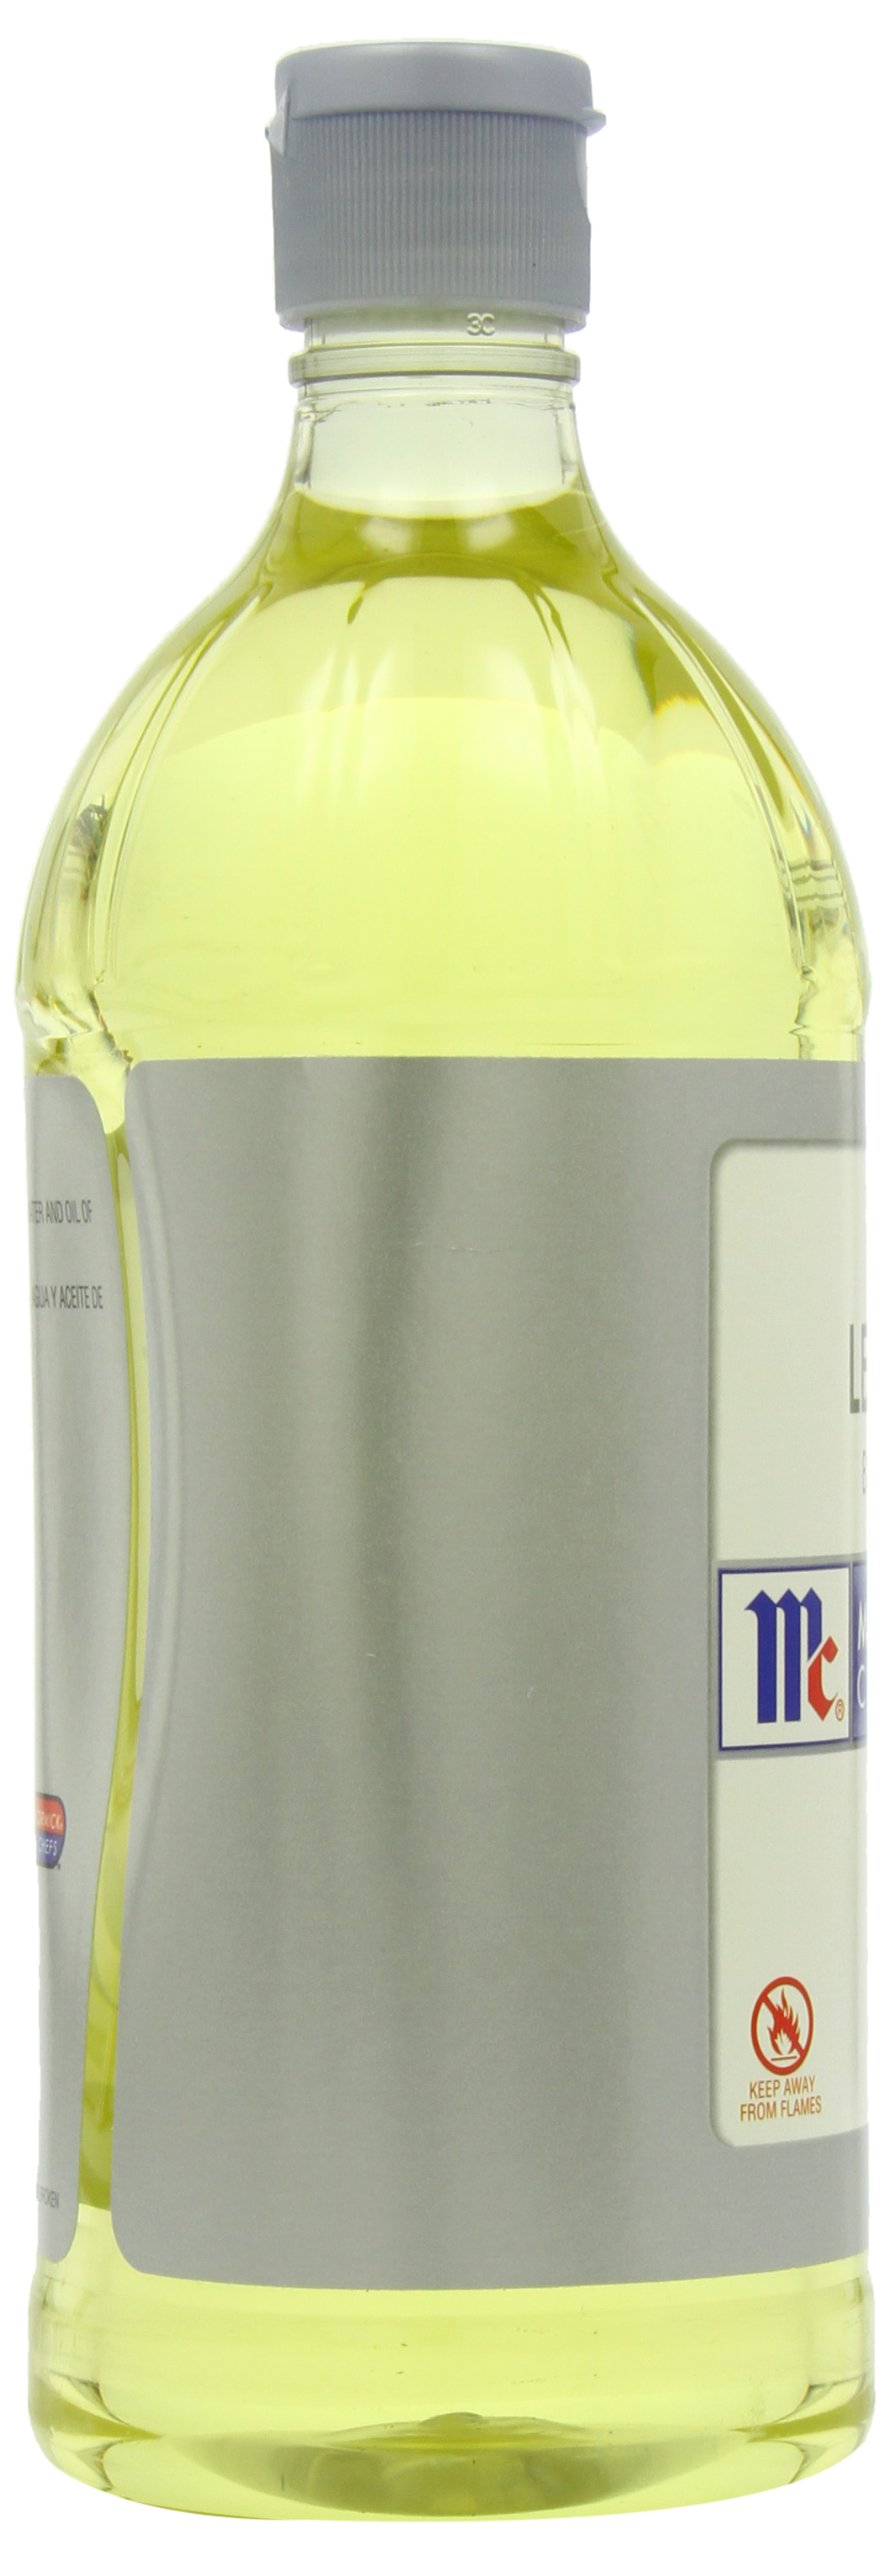 McCormick Culinary Pure Lemon Extract, 32 fl oz by McCormick (Image #6)